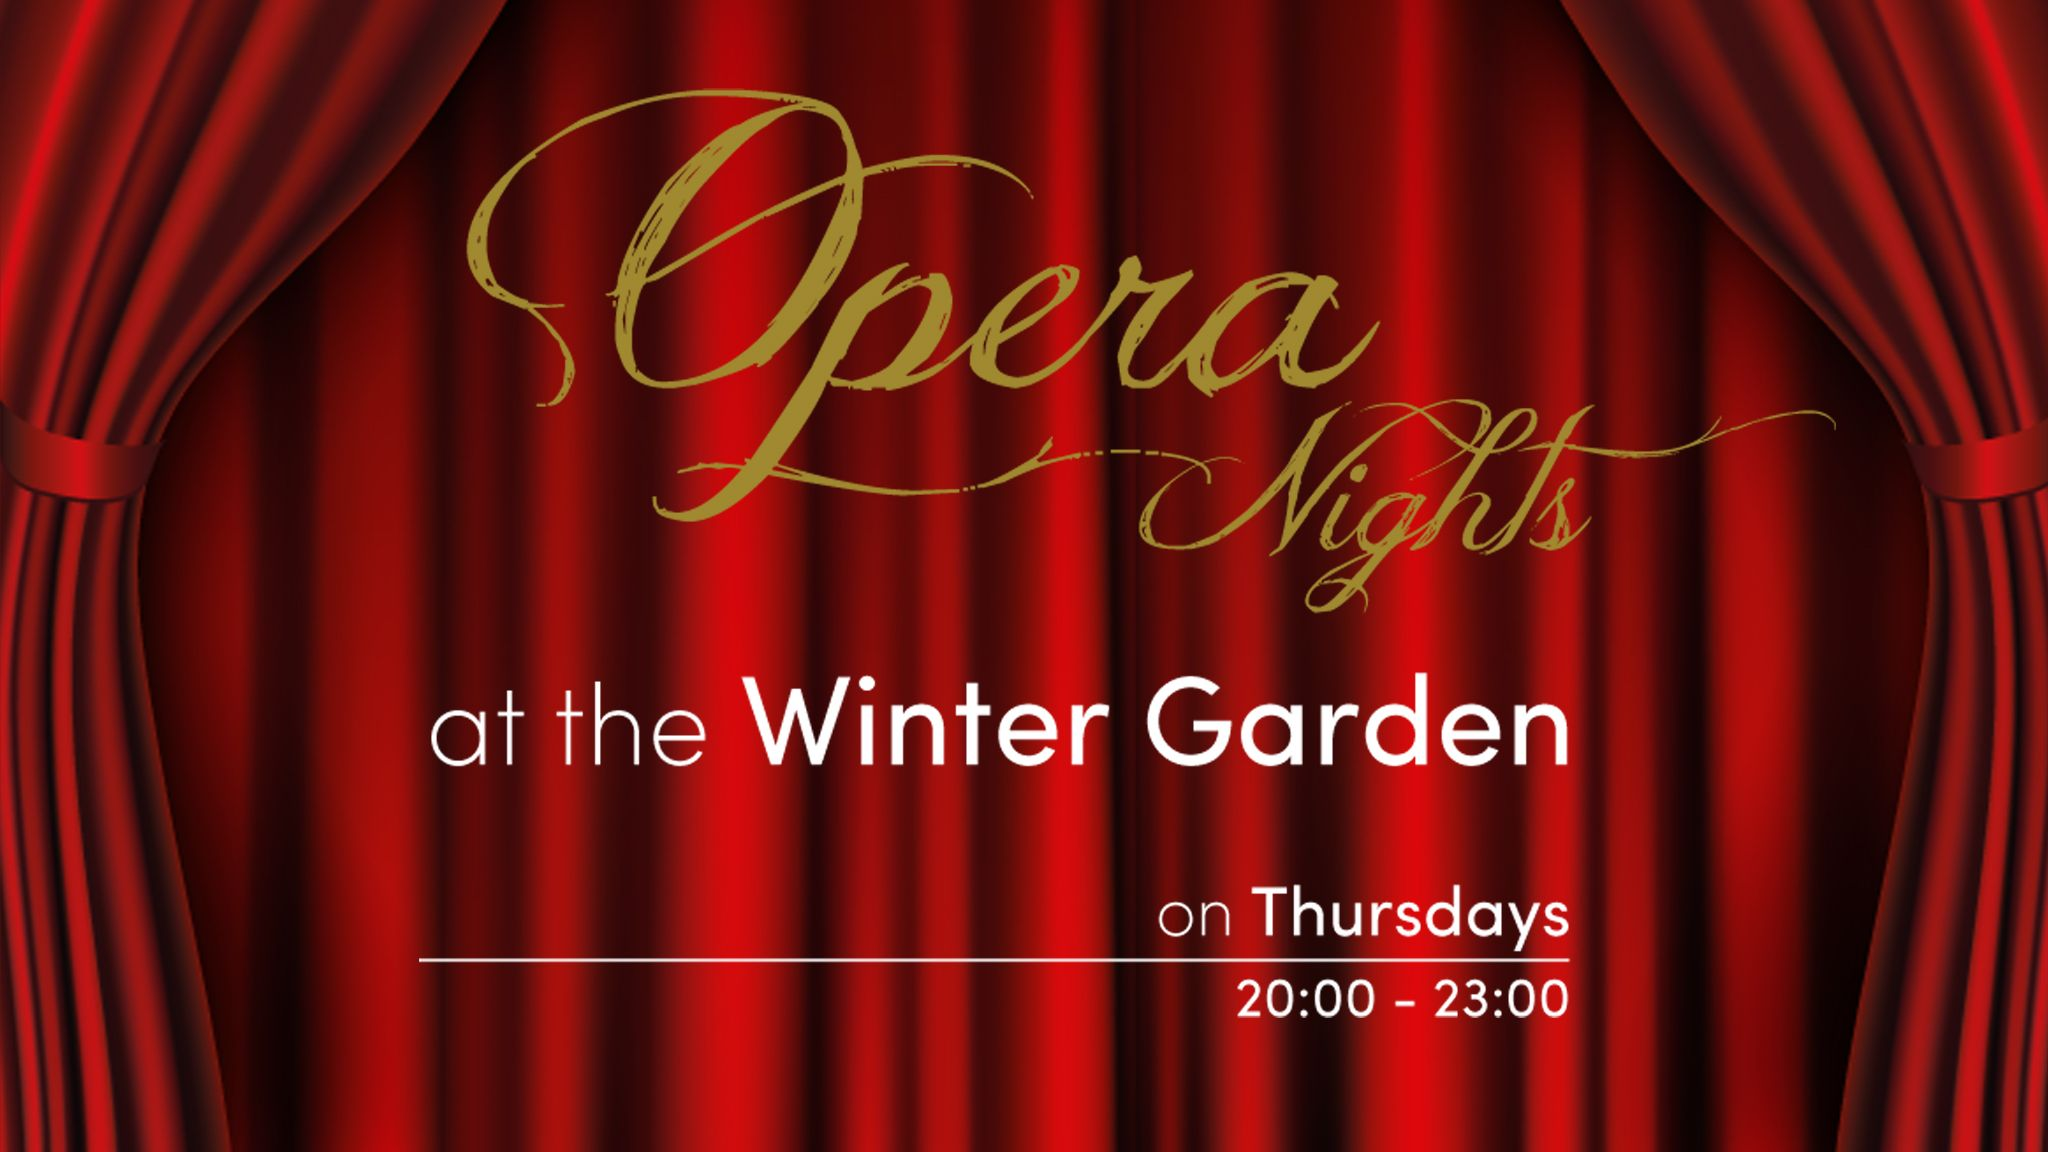 Opera Nights at the Winter Garden - Hotel Grande Bretagne